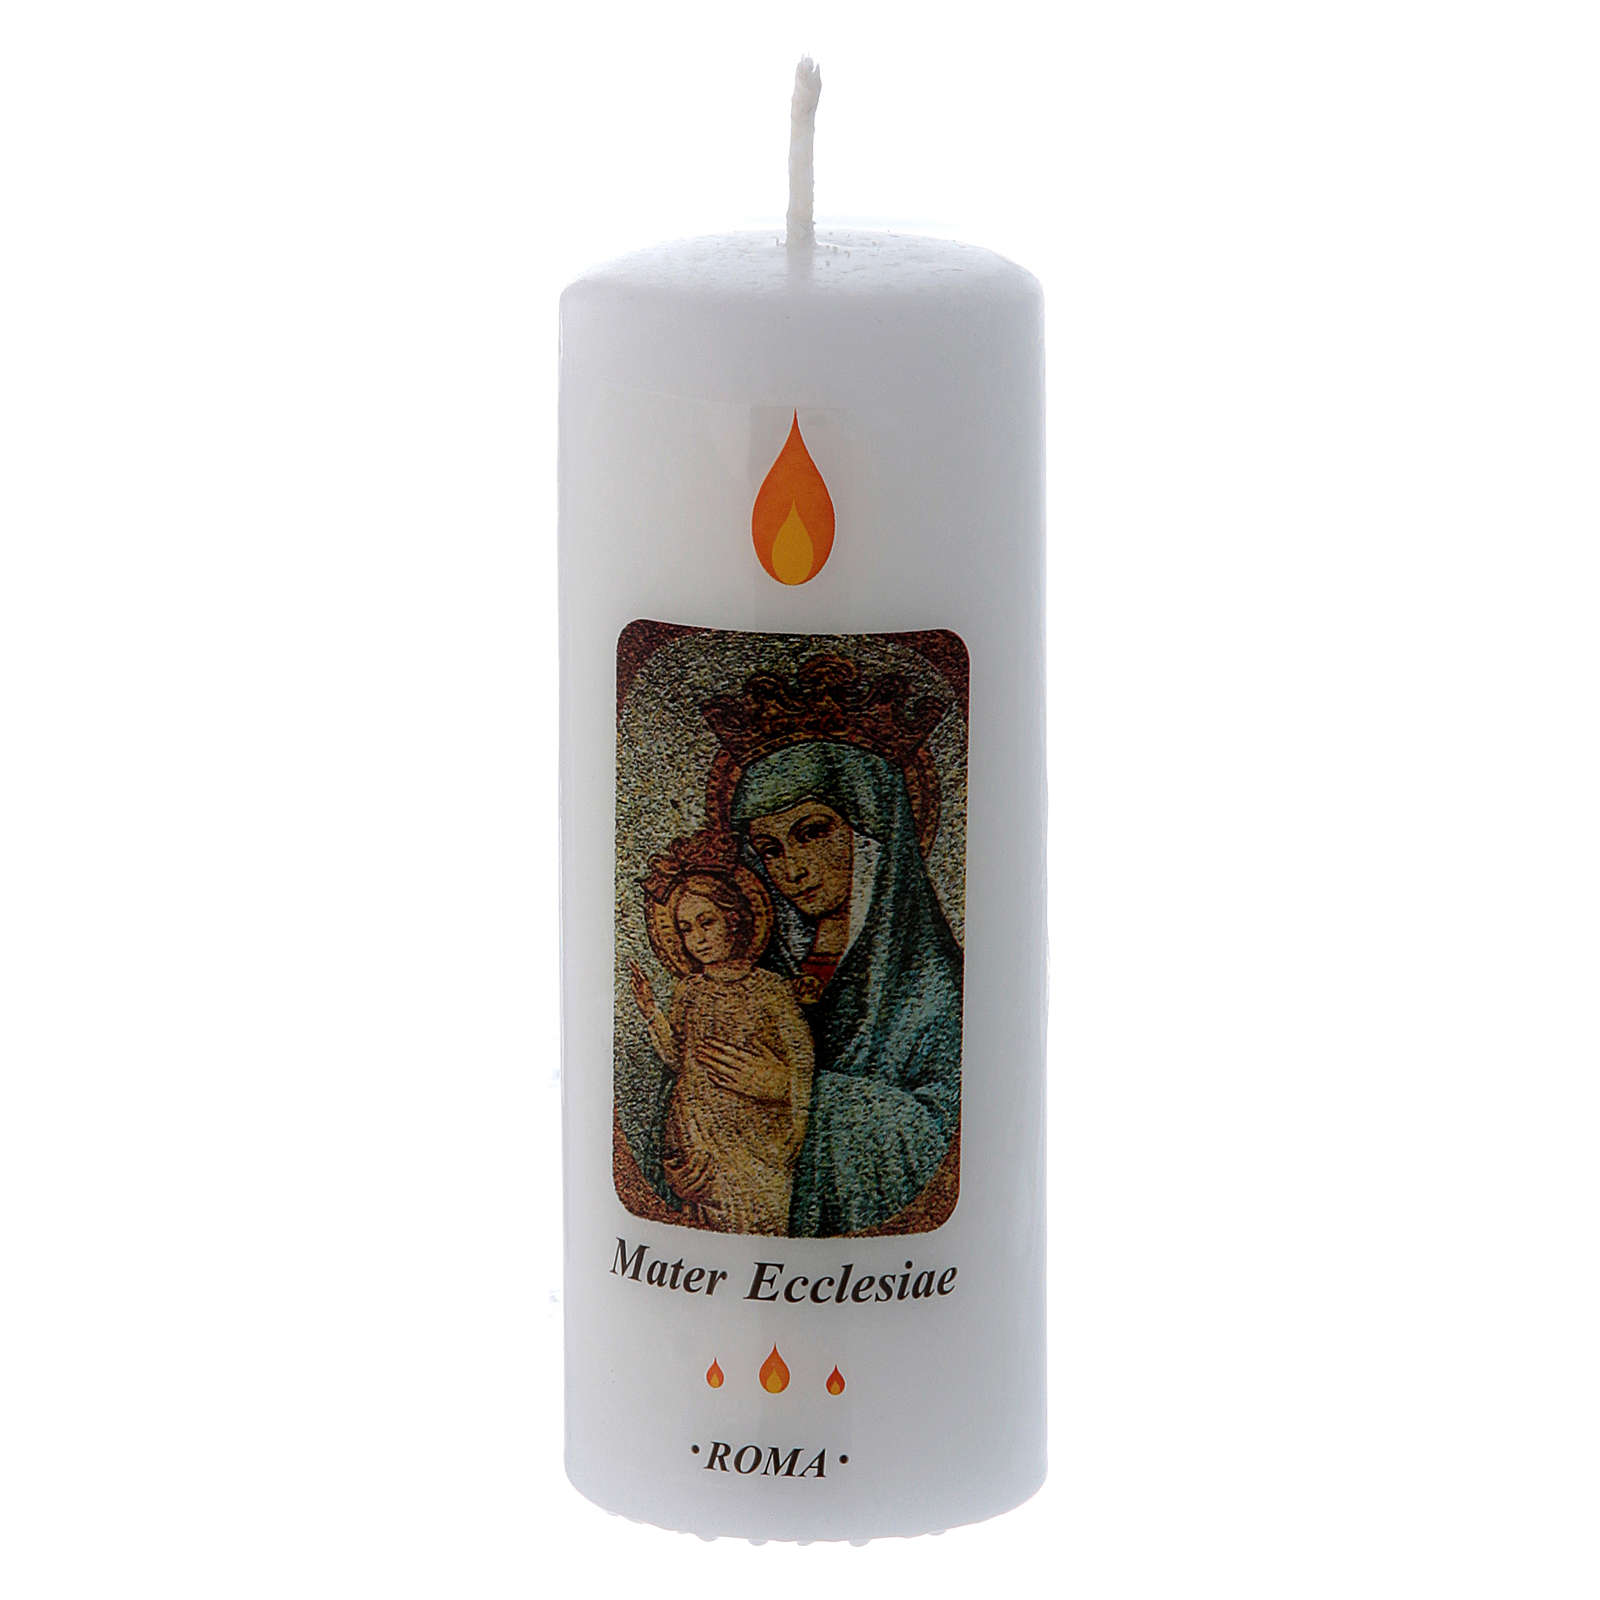 Mater Ecclesiae Candle 13x5 cm, paraffin wax 3